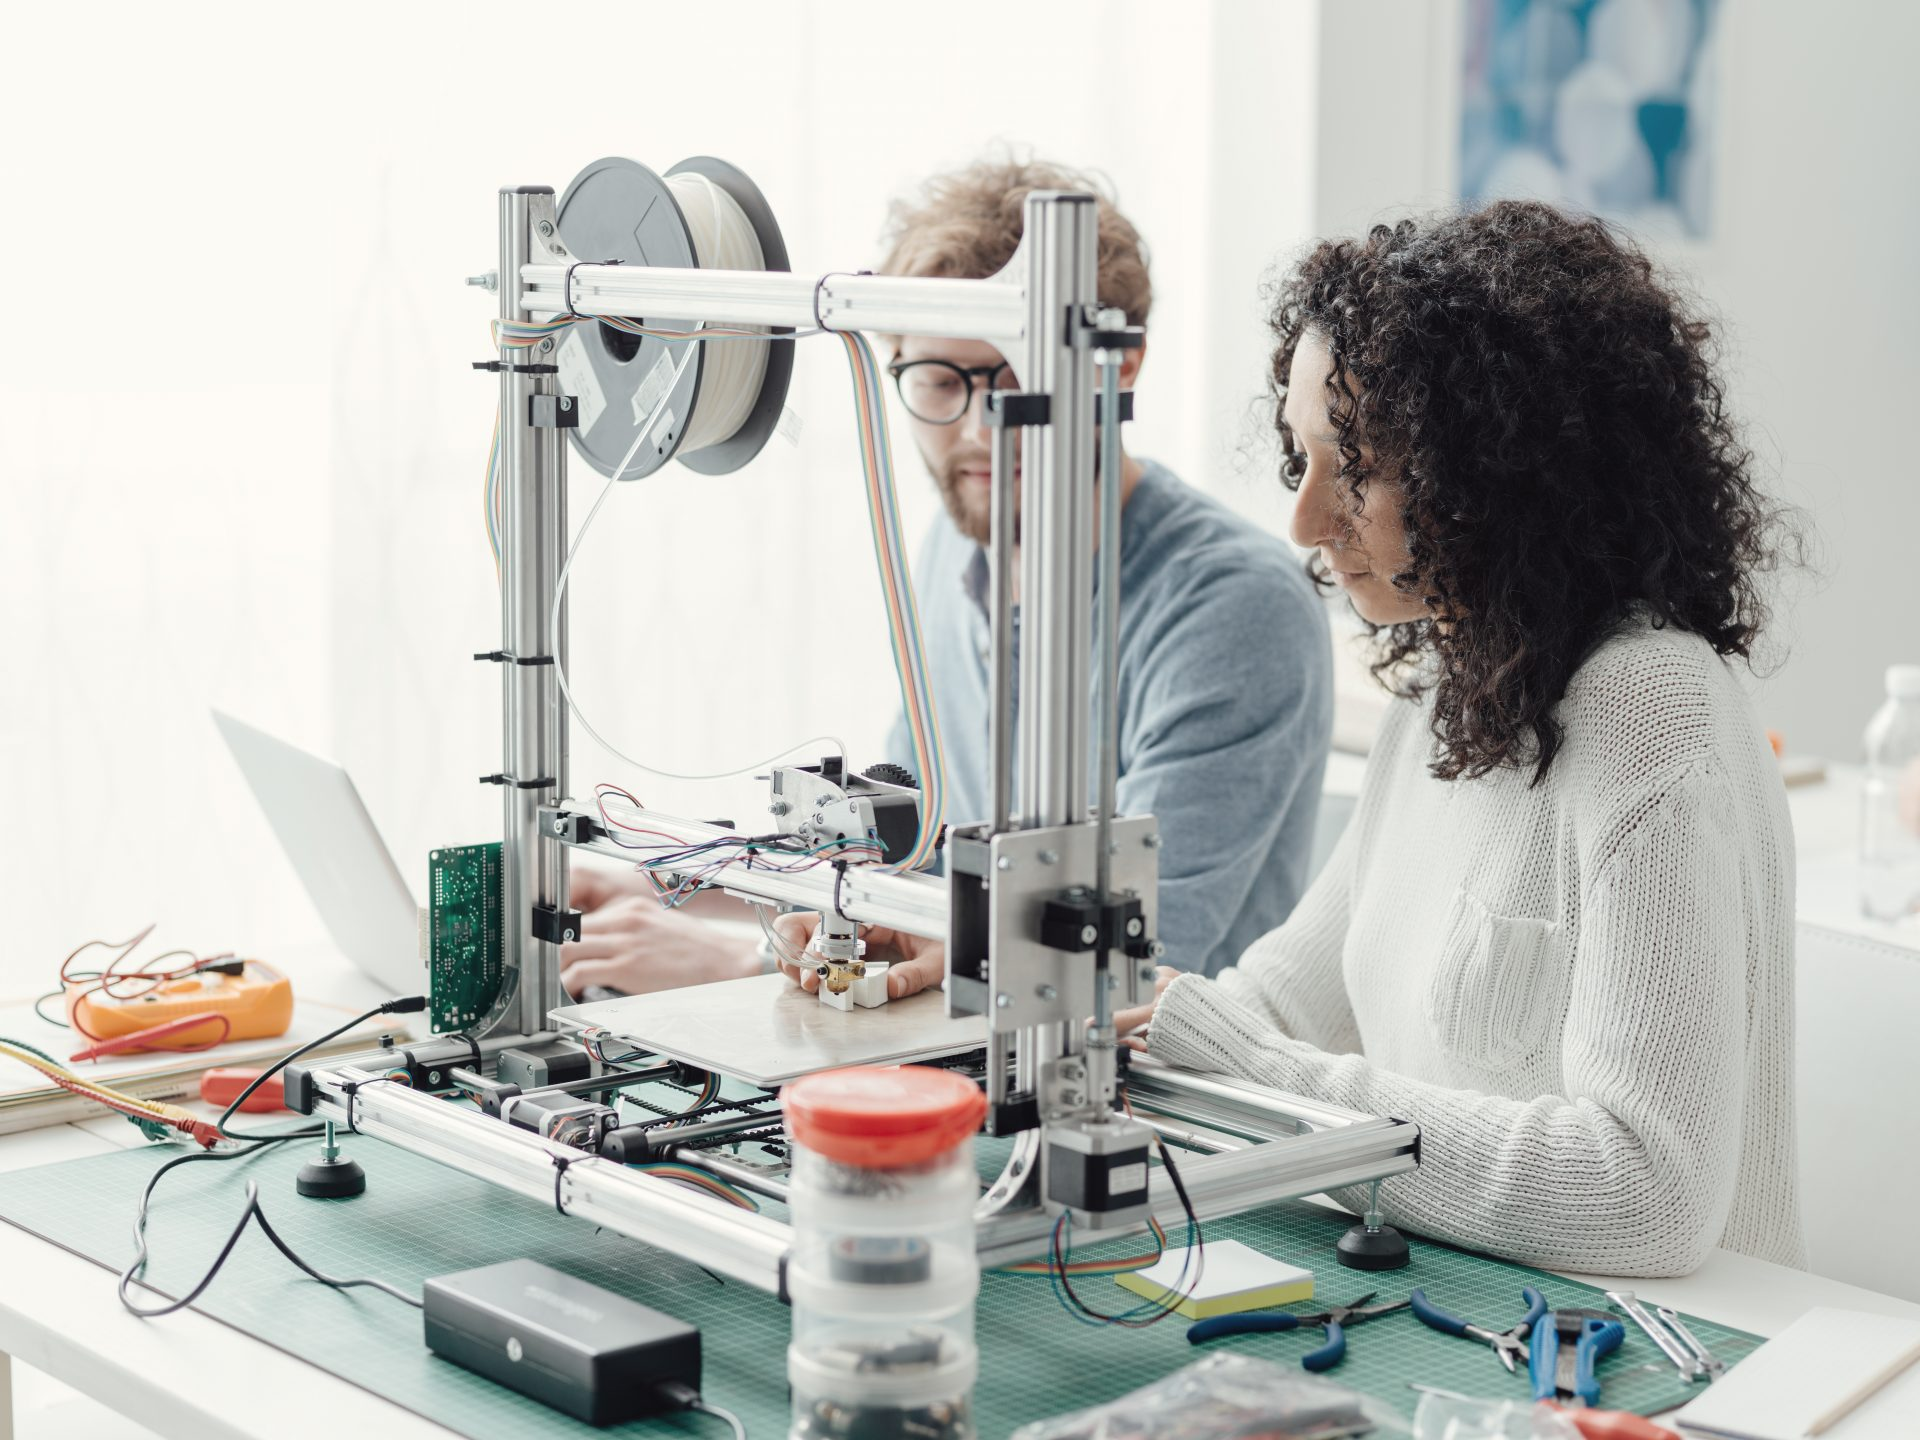 Engineering students using a 3D printer